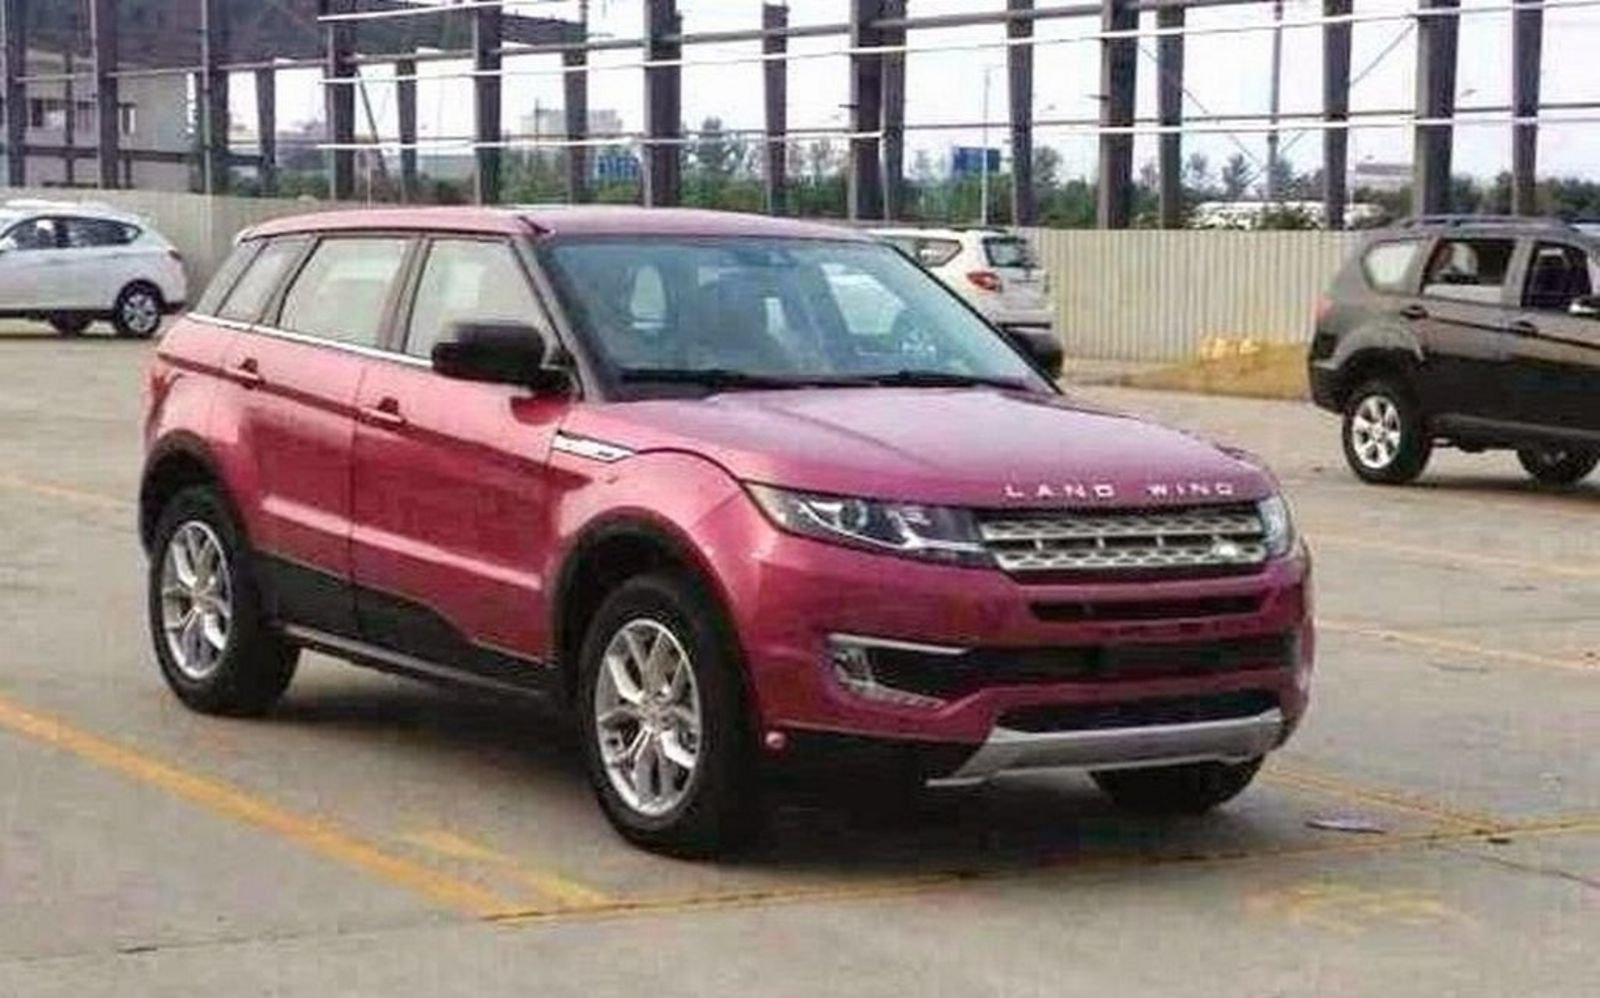 Land Rover Range Evoque Reviews Specs Prices Photos And Transmissions Wind X7 The Fake From China